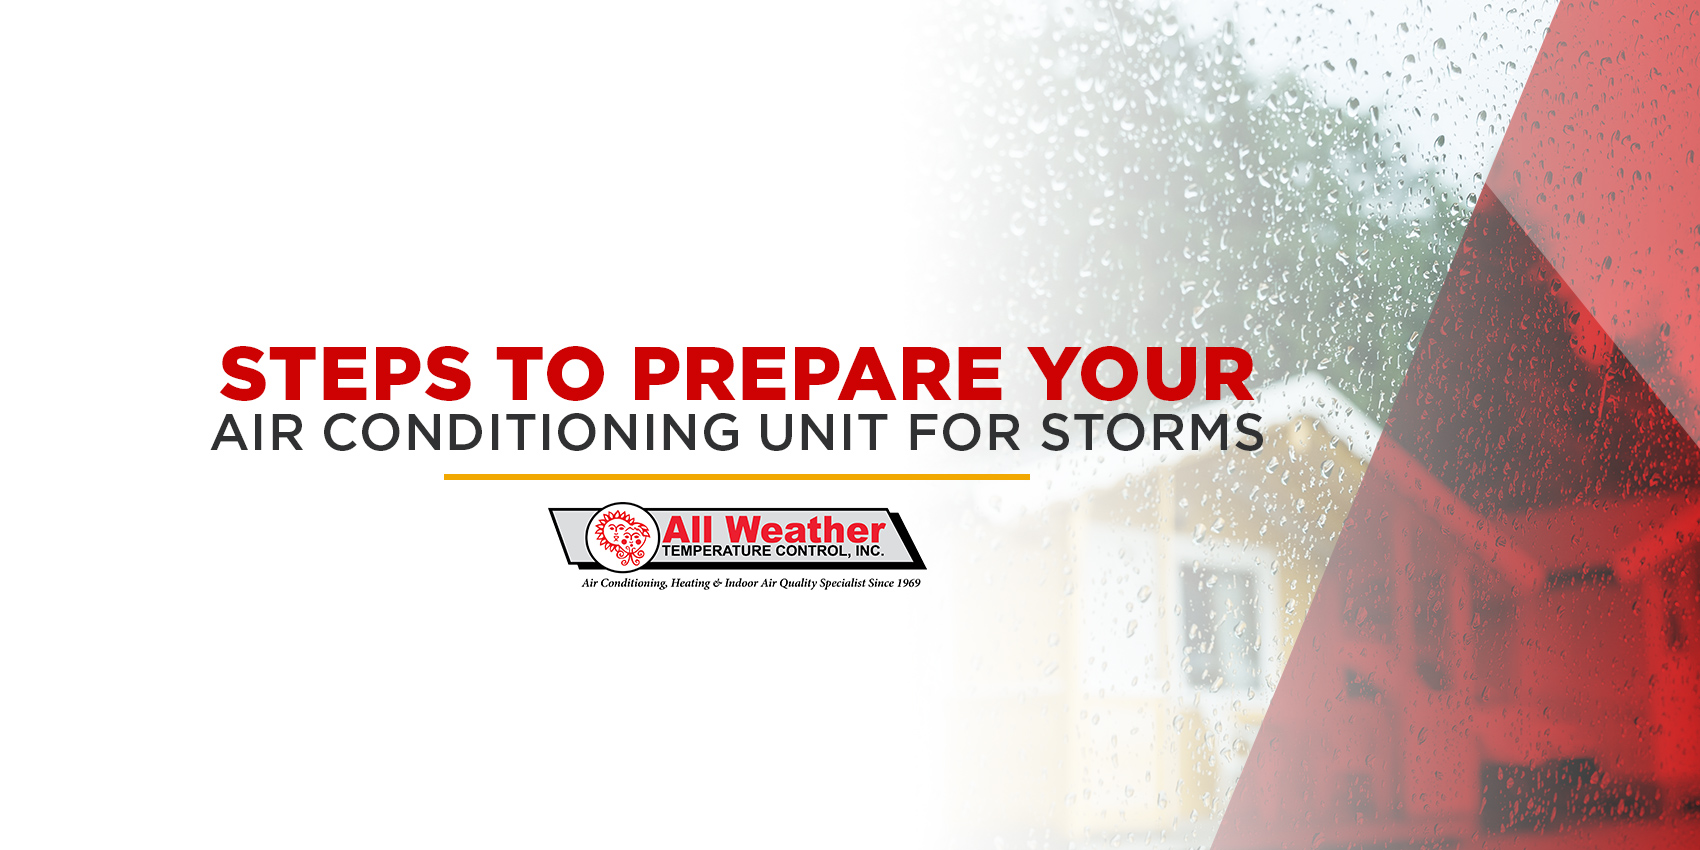 Steps to Prepare Your Air Conditioning Unit for Storms